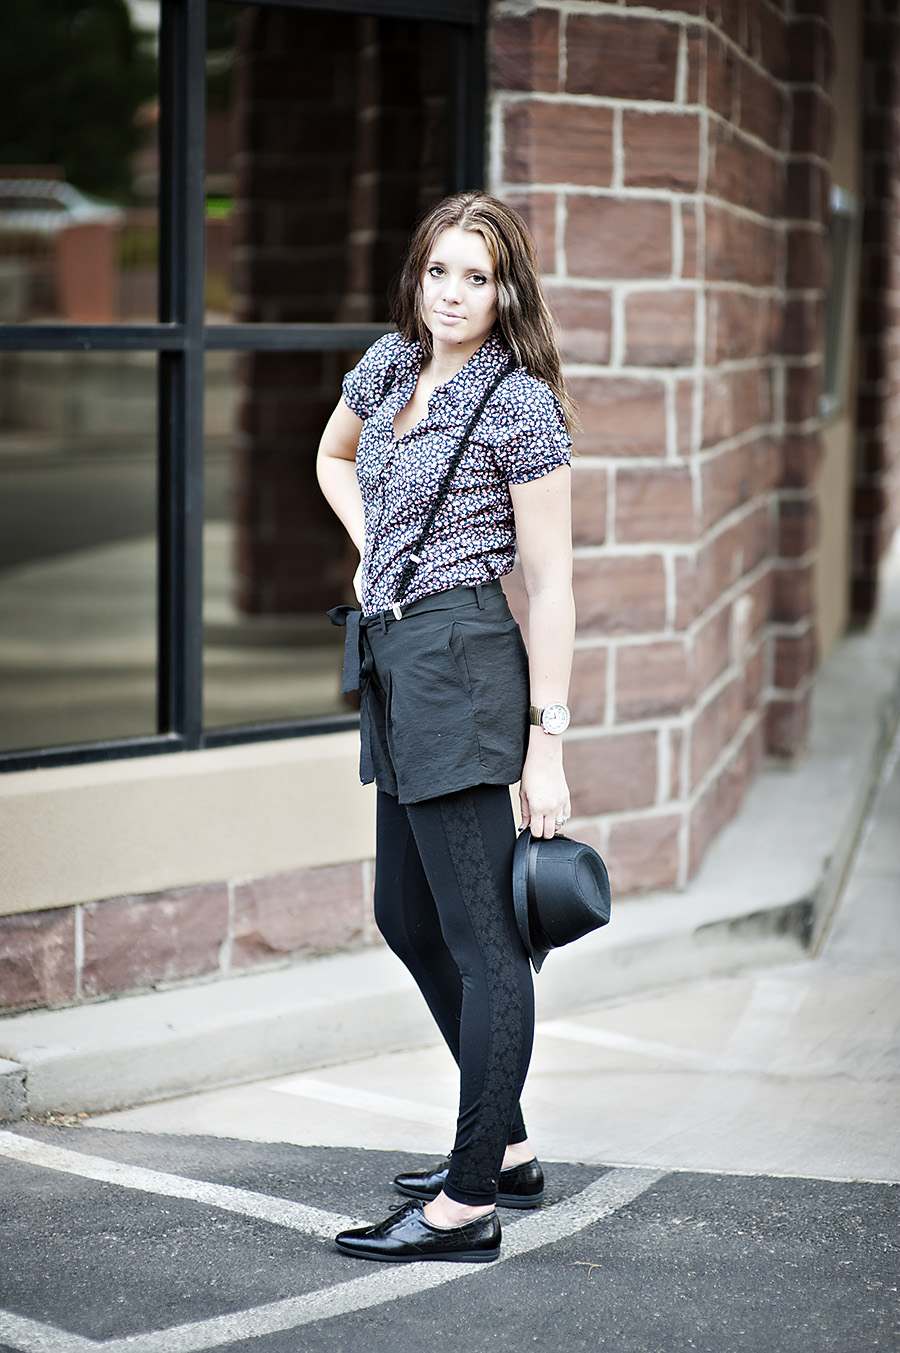 Black leggings, Utah Fashion